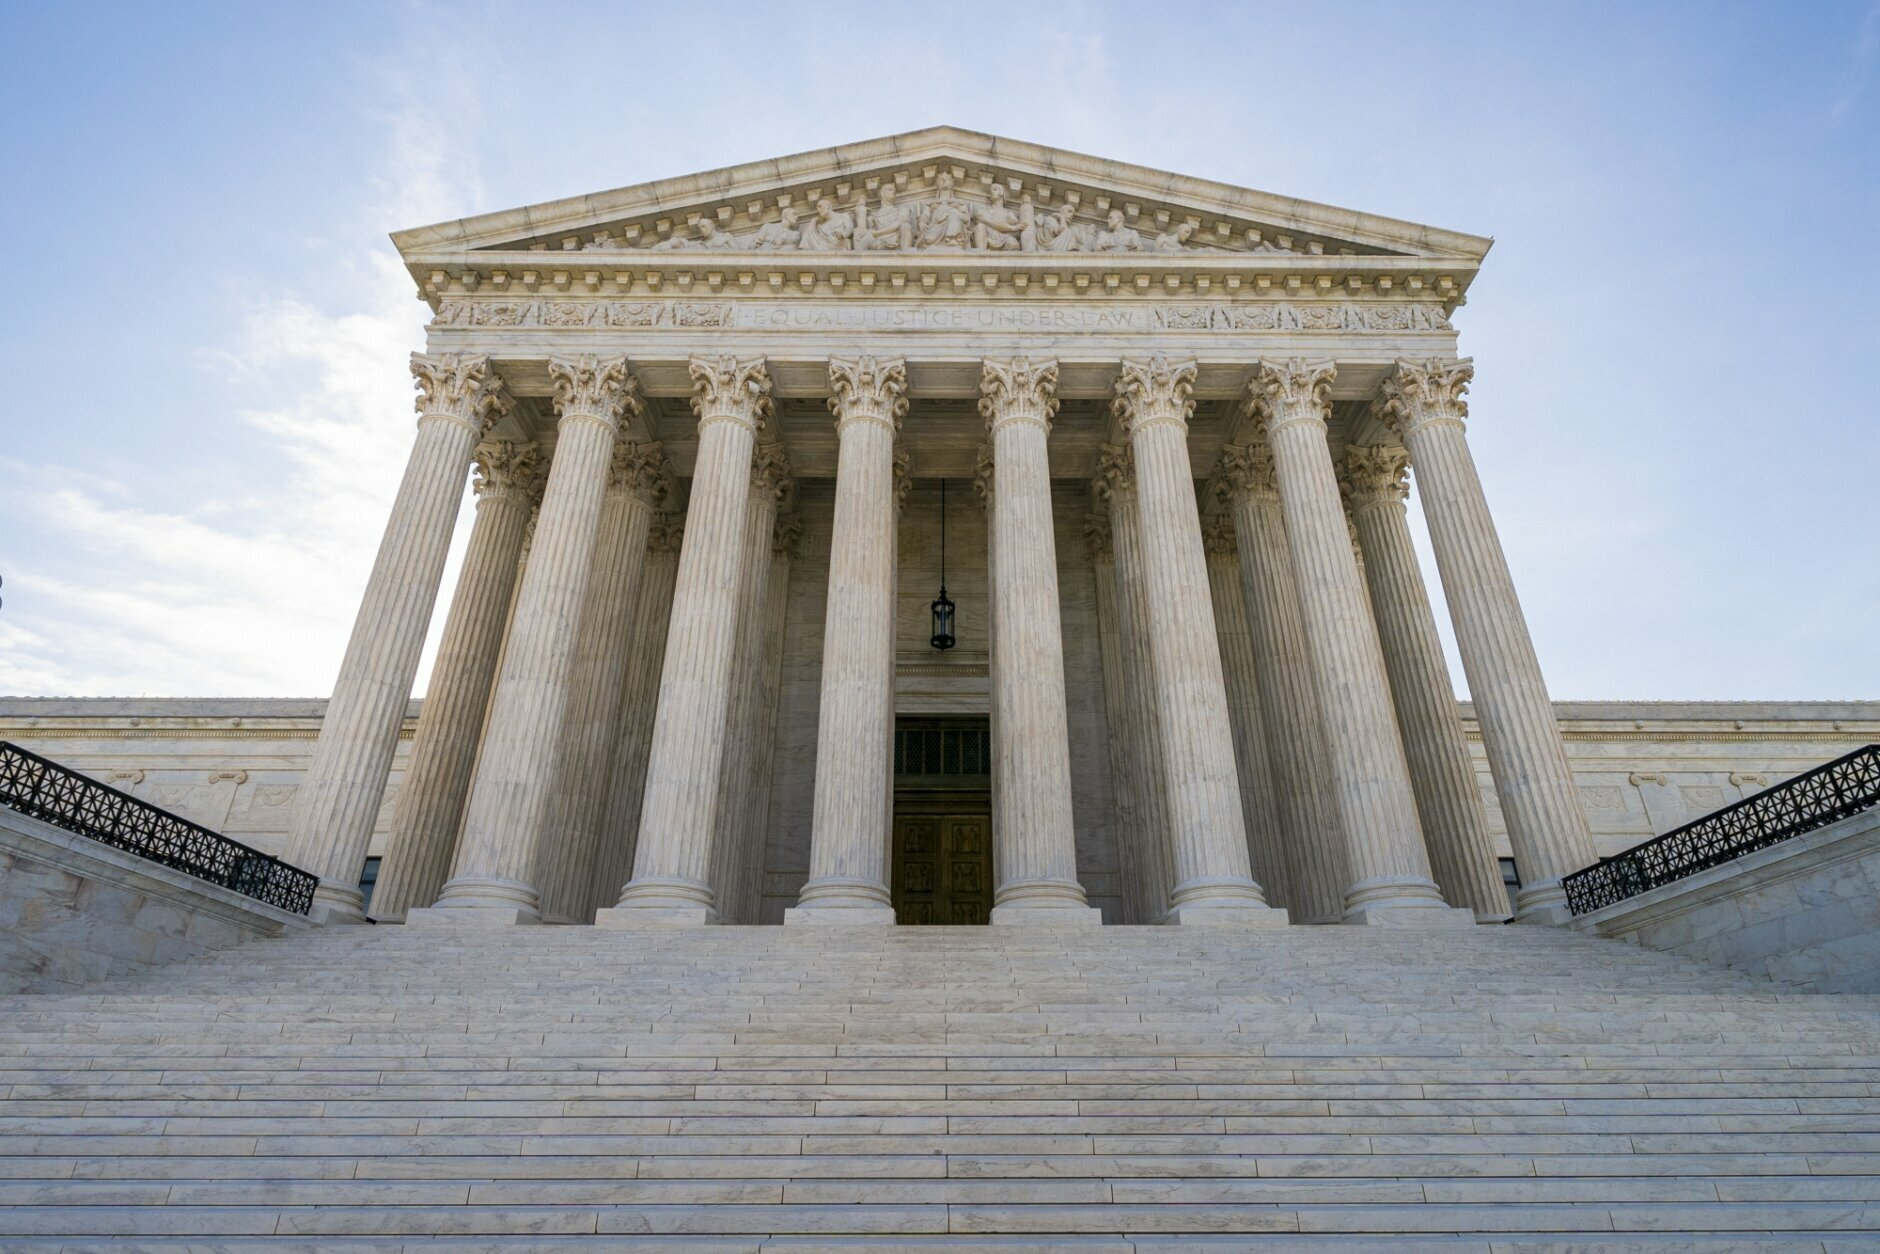 """<p><strong>Supreme Court</strong></p> <p>The Supreme Court's decisions are always consequential. In 2019, they ruled in June that a <a href=""""https://wtop.com/supreme-court/2019/06/supreme-court-blocks-2020-census-citizenship-question-in-setback-for-trump-admin/"""" target=""""_blank"""" rel=""""noopener"""">question on citizenship</a> could not be added to the 2020 Census, and also that they didn't have the authority to stop lawmakers from <a href=""""https://wtop.com/supreme-court/2019/06/census-redistricting-decisions-due-on-high-courts-last-day/"""" target=""""_blank"""" rel=""""noopener"""">redrawing voting-district lines</a> to give themselves an electoral advantage — a practice known as partisan gerrymandering.</p> <p>They also upheld in March a Virginia case in which a lower court found that the commonwealth's district lines had been drawn to pack black voters into districts — """"racial gerrymandering,"""" which the court does have the authority to ban. As <a href=""""https://wtop.com/virginia/2019/06/high-court-lets-virginia-voting-go-ahead-under-redrawn-map/"""" target=""""_blank"""" rel=""""noopener"""">The Associated Press</a> pointed out, that leaves judges in the position of reading the motivations behind lawmakers' actions.</p> <p>""""This decision will make it harder for courts to figure out racial discriminatory motives where they do exist, to the extent they do exist, because line drawers will be able to say that 'All of our decisions were to gain partisan advantage,&#8217;"""" Rebecca Green, co-director of the Election Law Program, a joint project of the William &amp; Mary Law School and the National Center for State Courts, told The Associated Press. """"So I think it will be very hard for plaintiffs to find evidence or to demonstrate the racial predominance that they would need to demonstrate to win a claim of racial gerrymandering.""""</p>"""